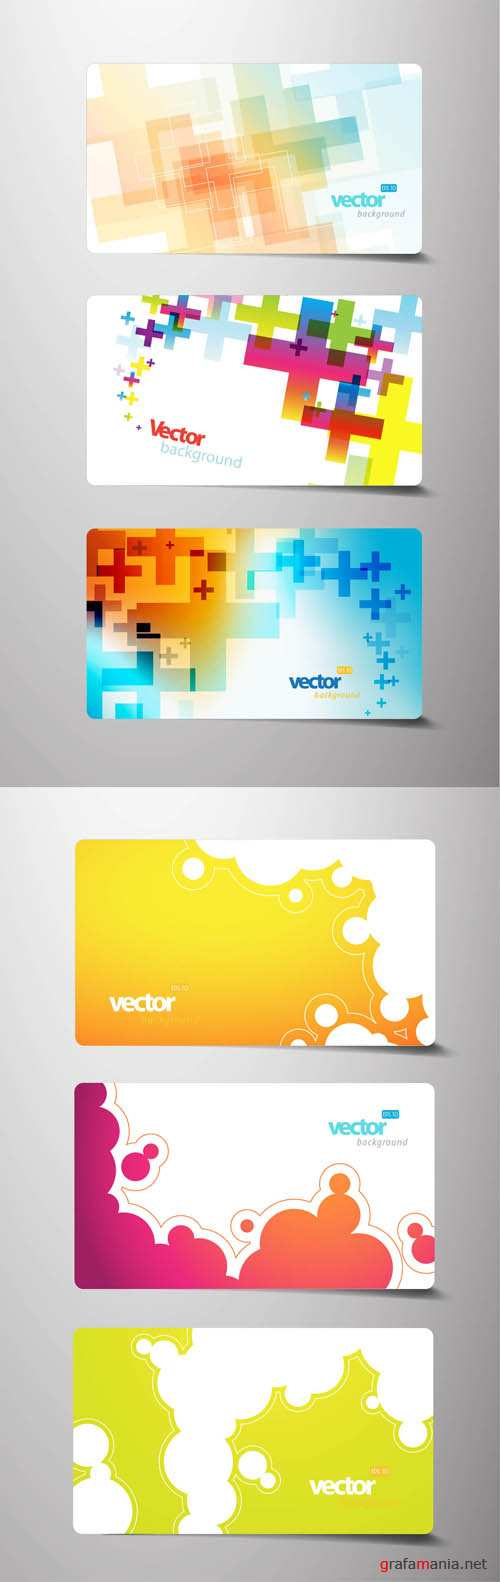 Vector Elements Creative Cards #3 EPS